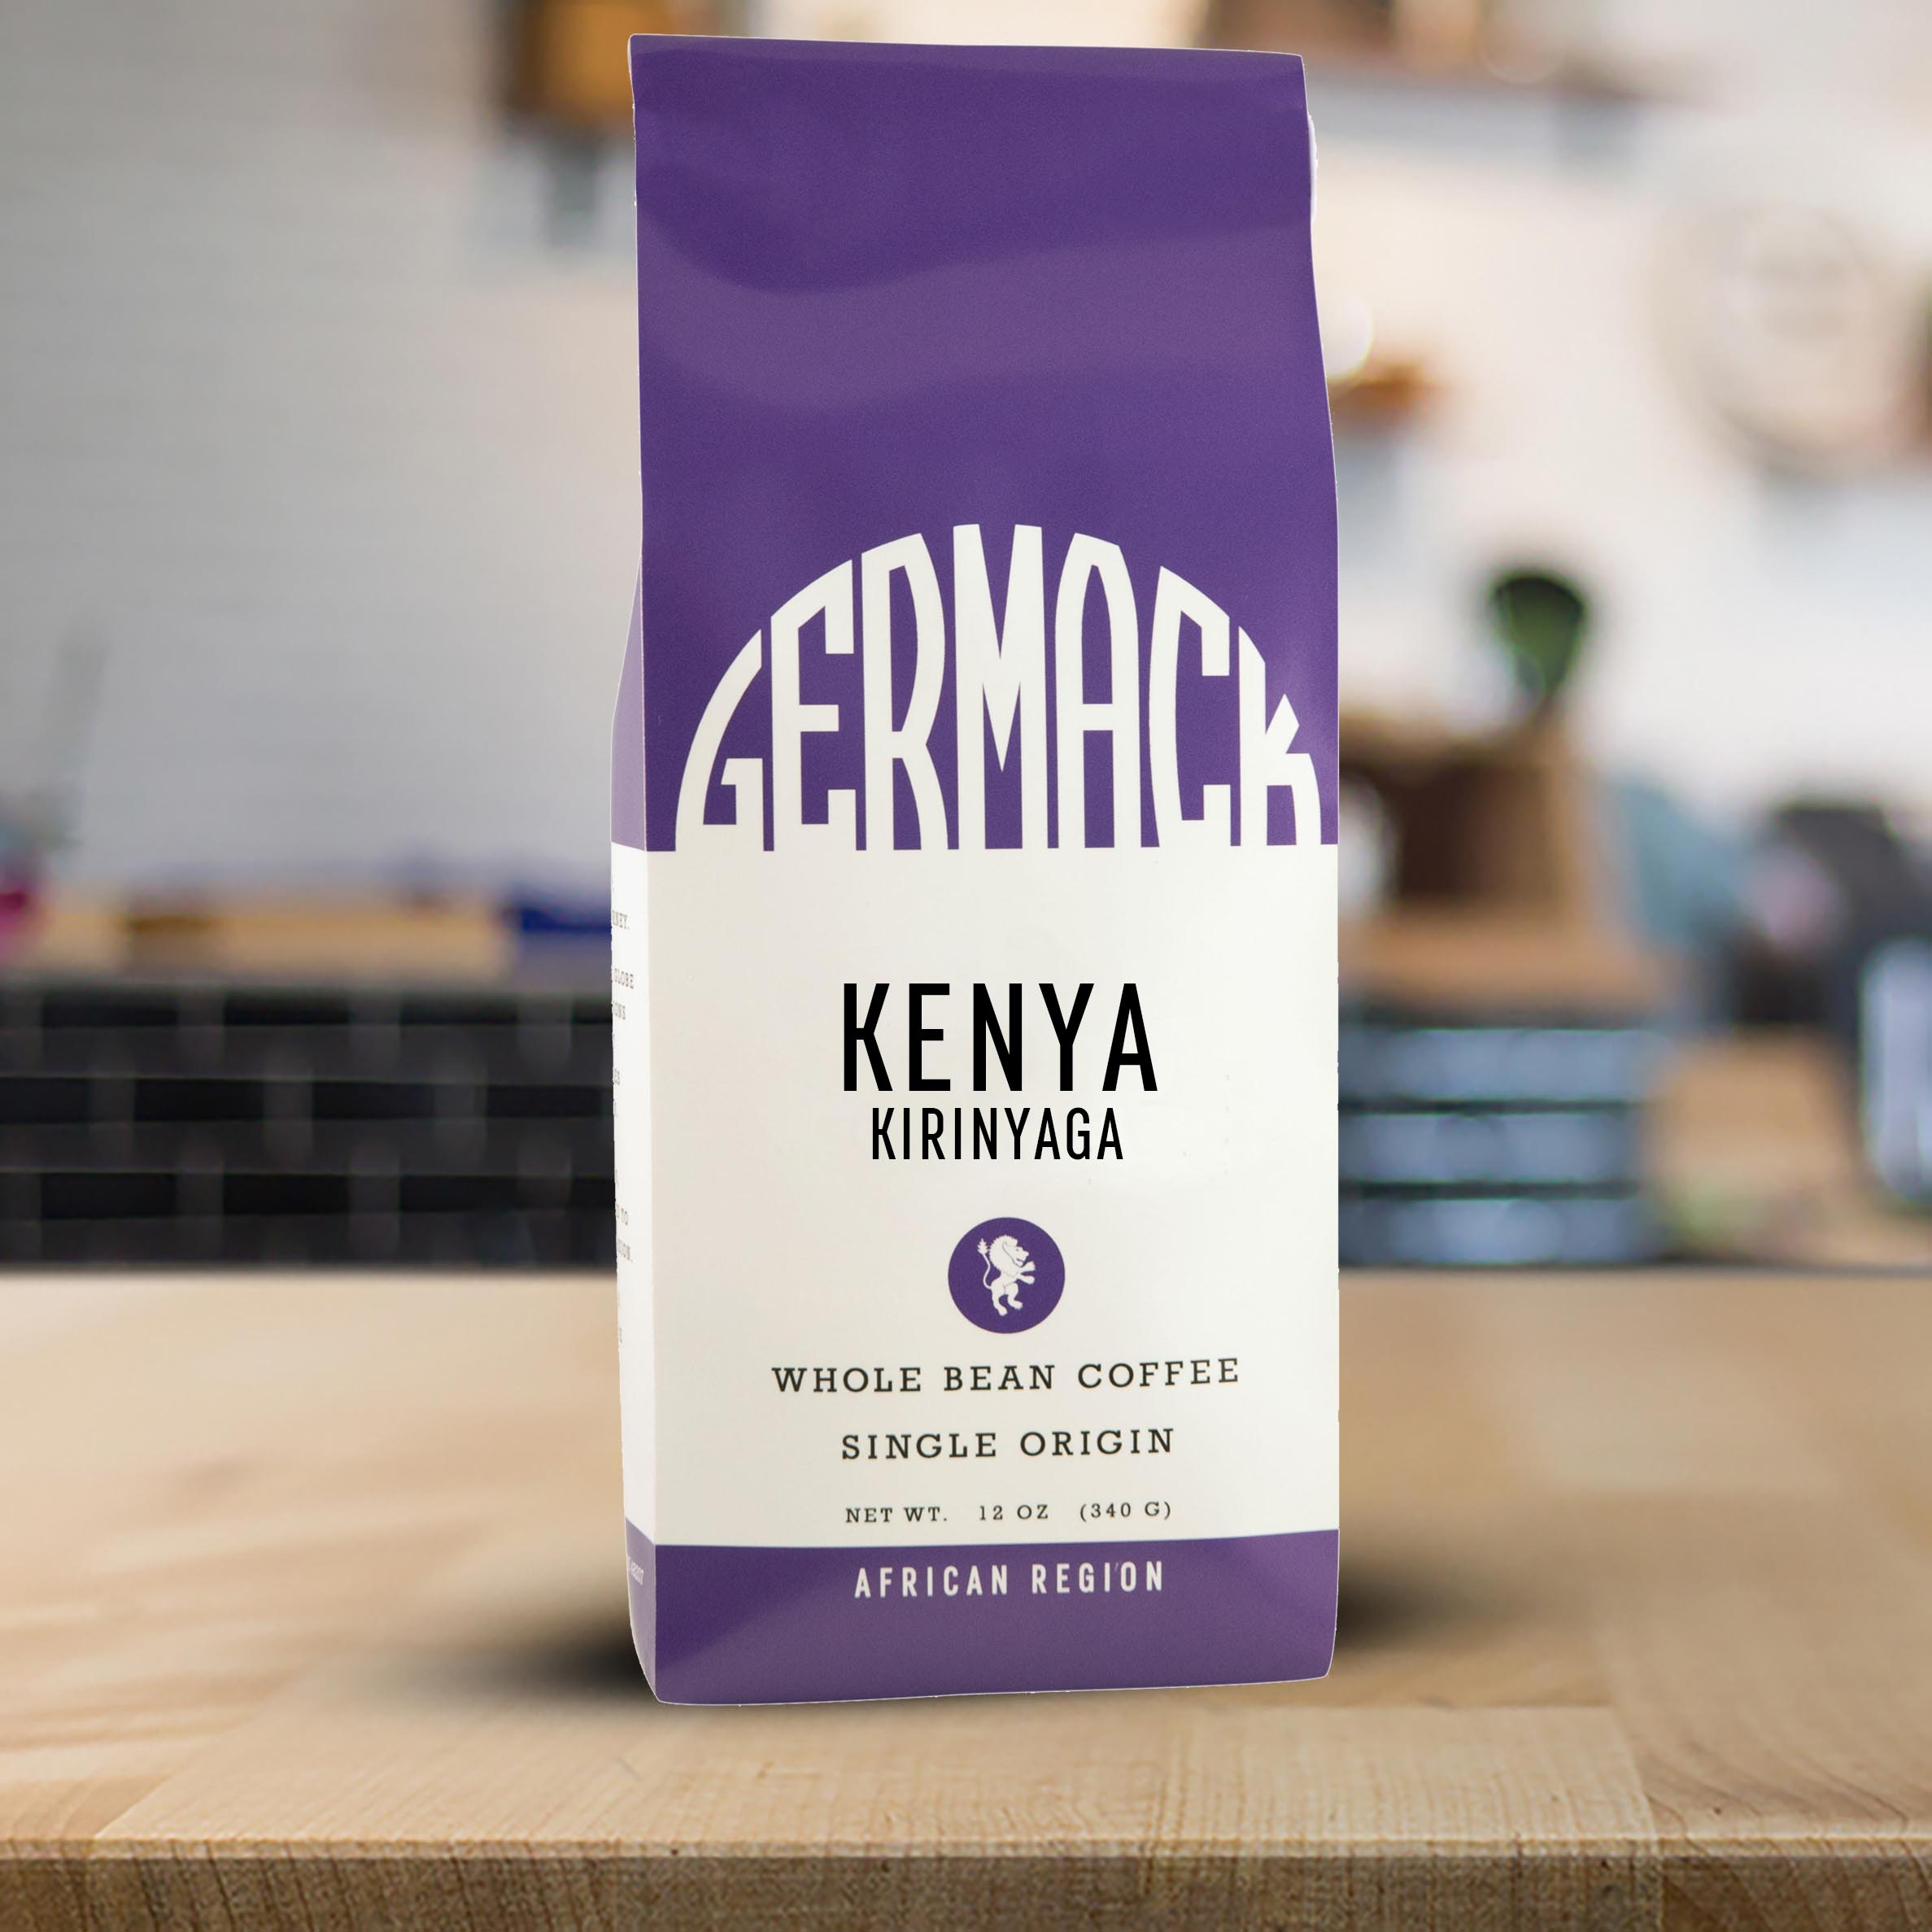 Picture Germack Coffee Kenya Kirinyaga - 12 oz